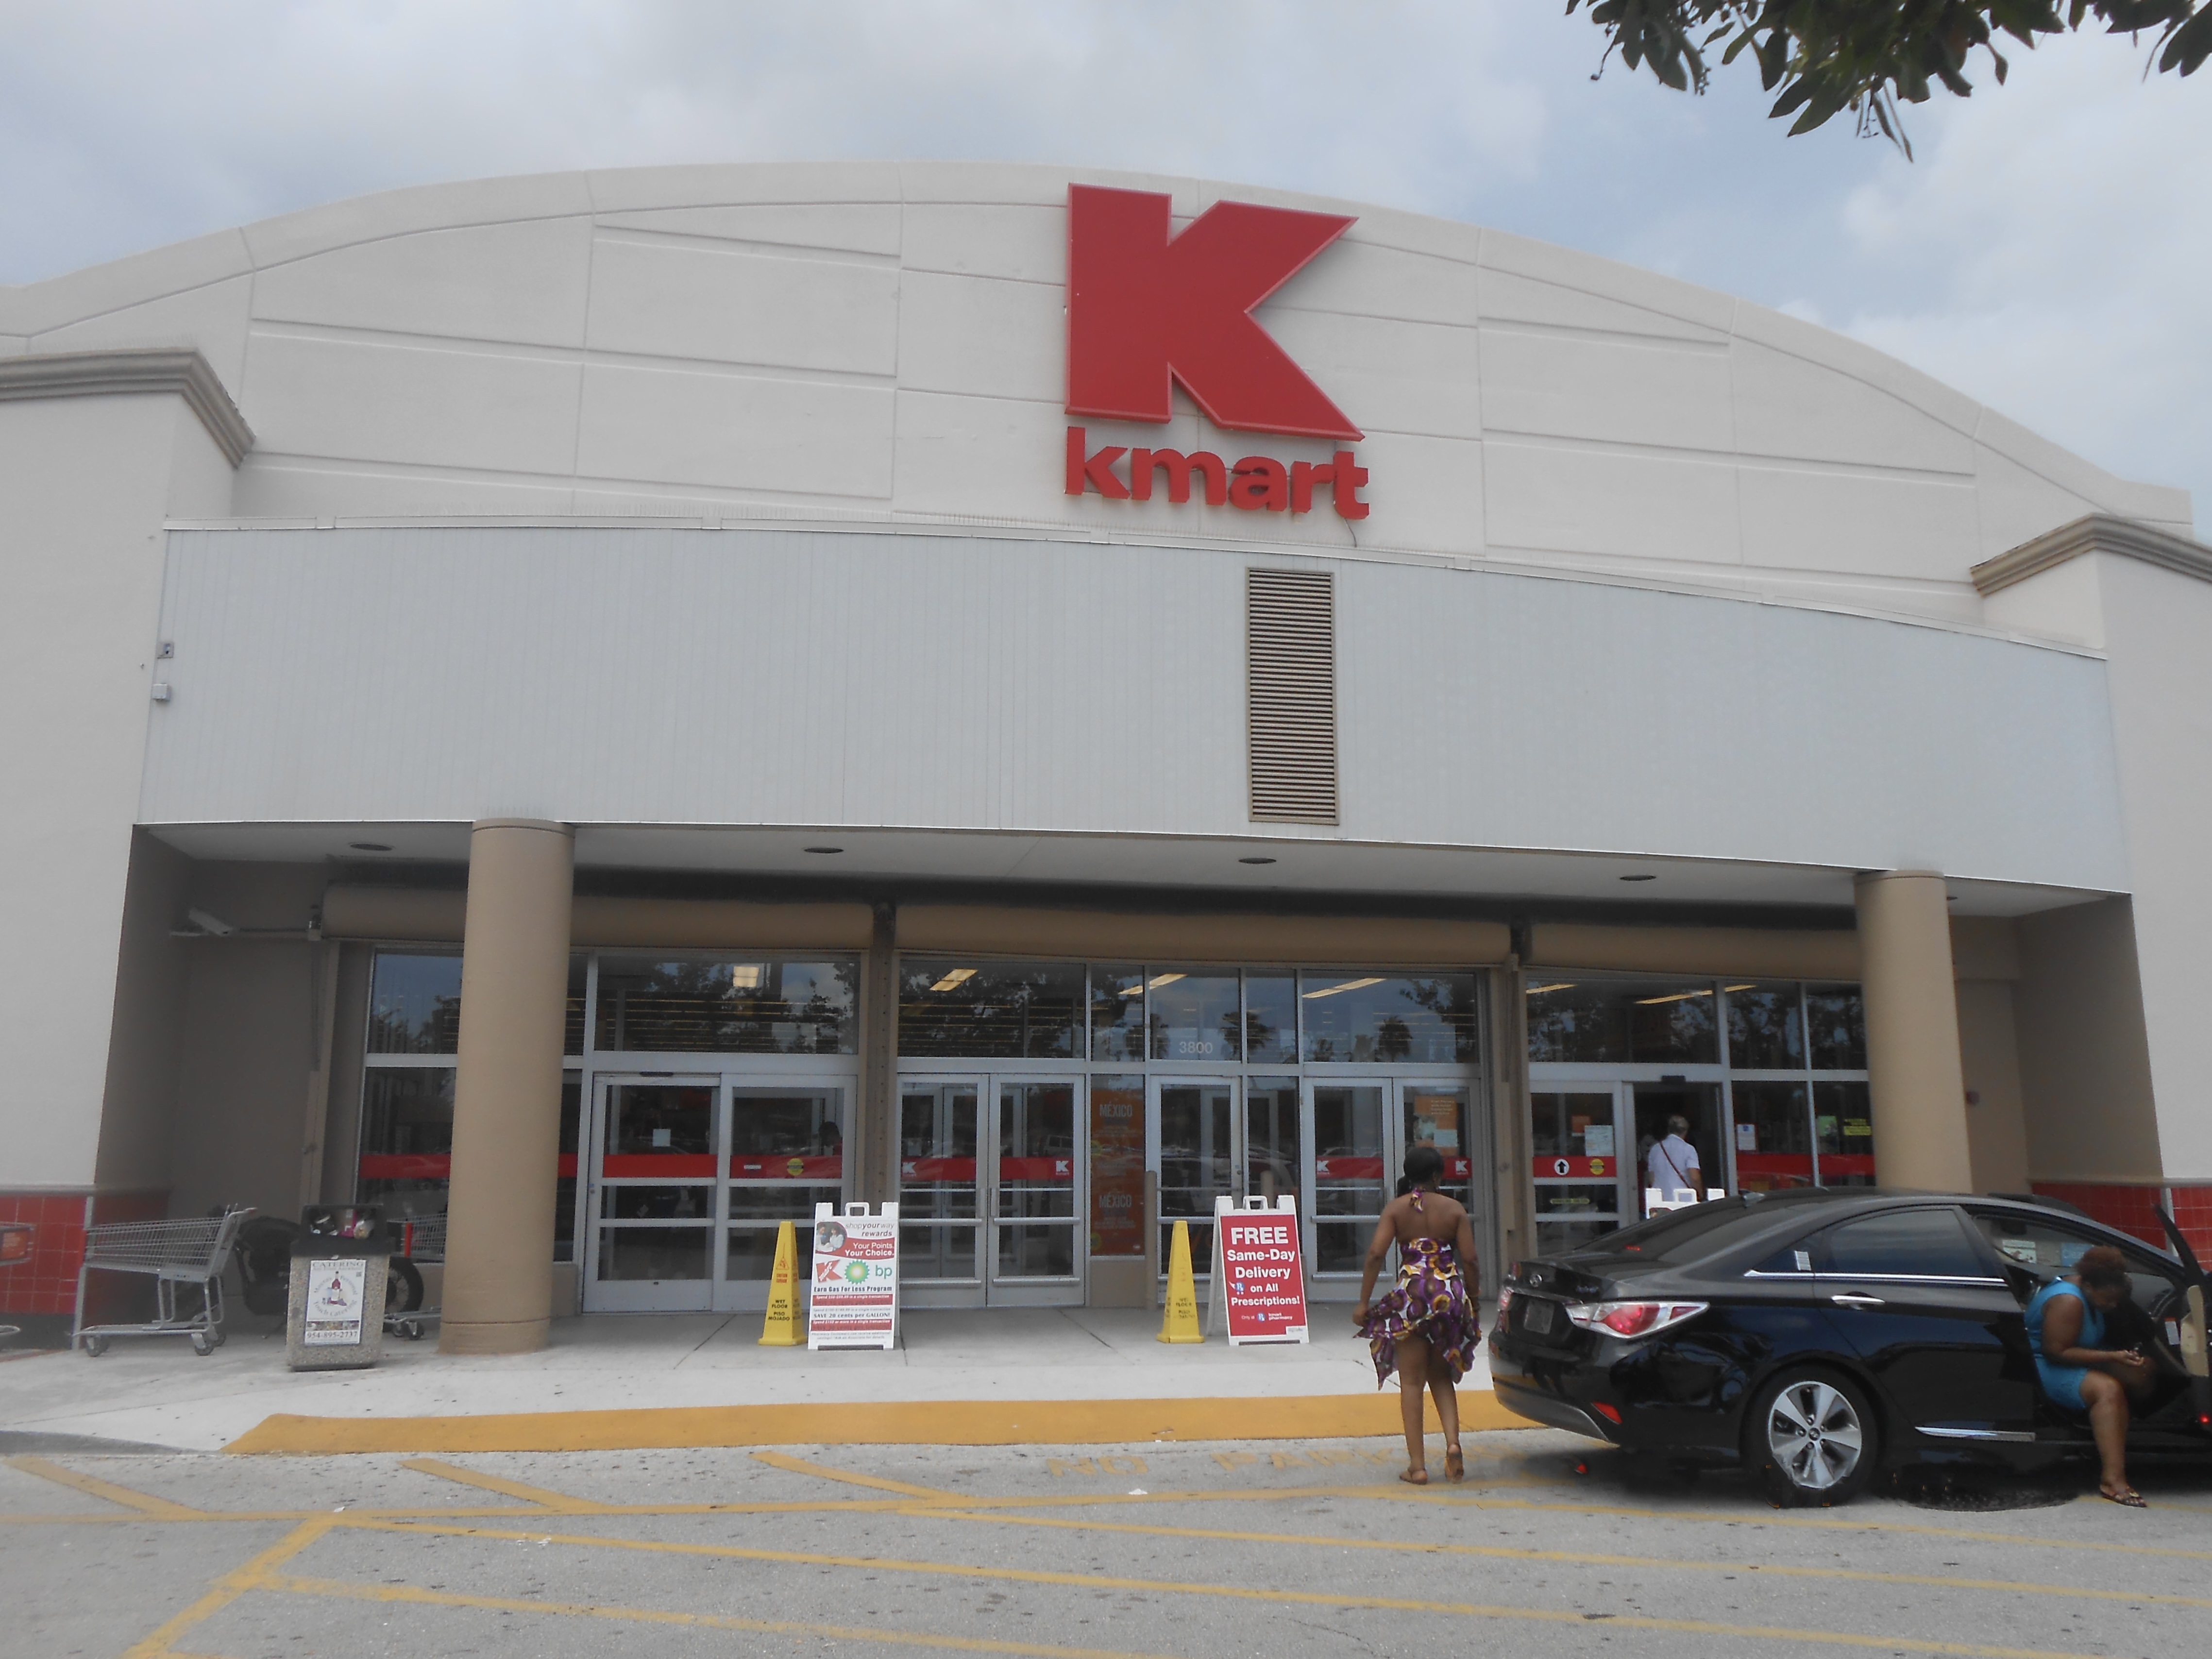 file kmart in hollywood florida jpg wikimedia commons